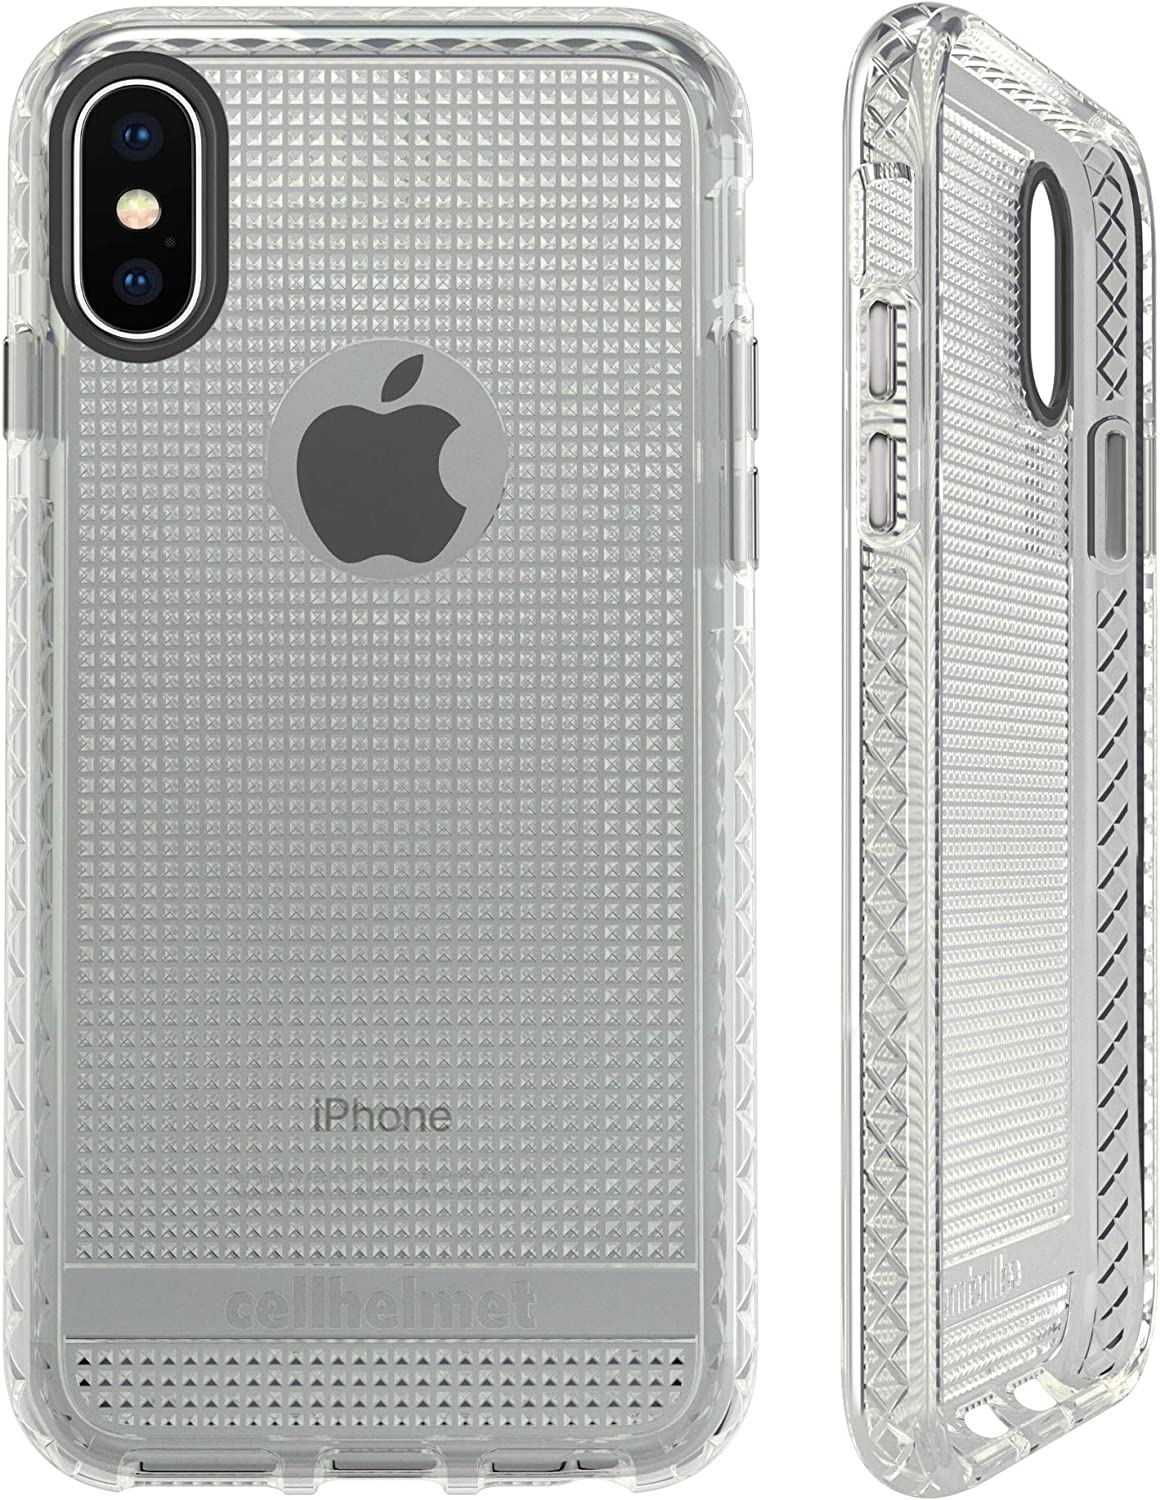 OFFicial store cellhelmet New products world's highest quality popular Altitude X Series Clear iPhone Phone Case Apple for